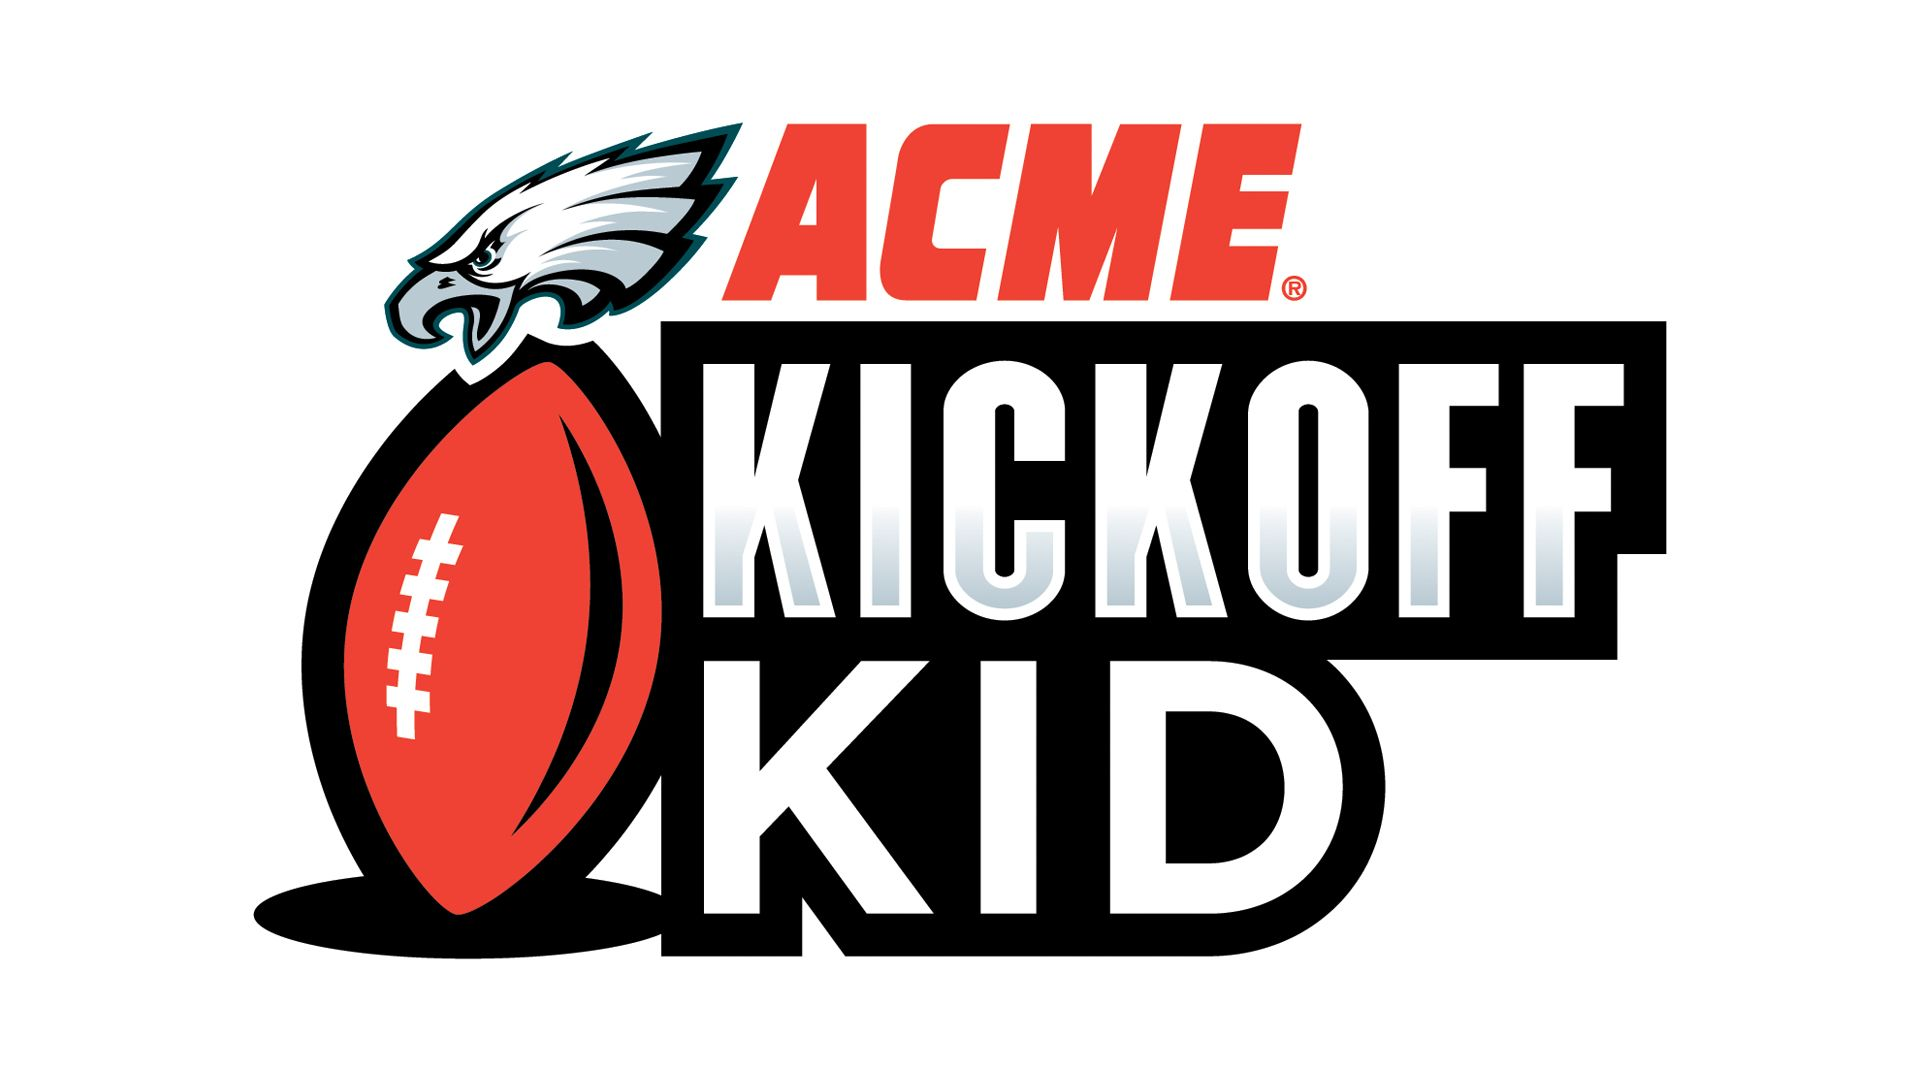 ACME Kickoff Kid